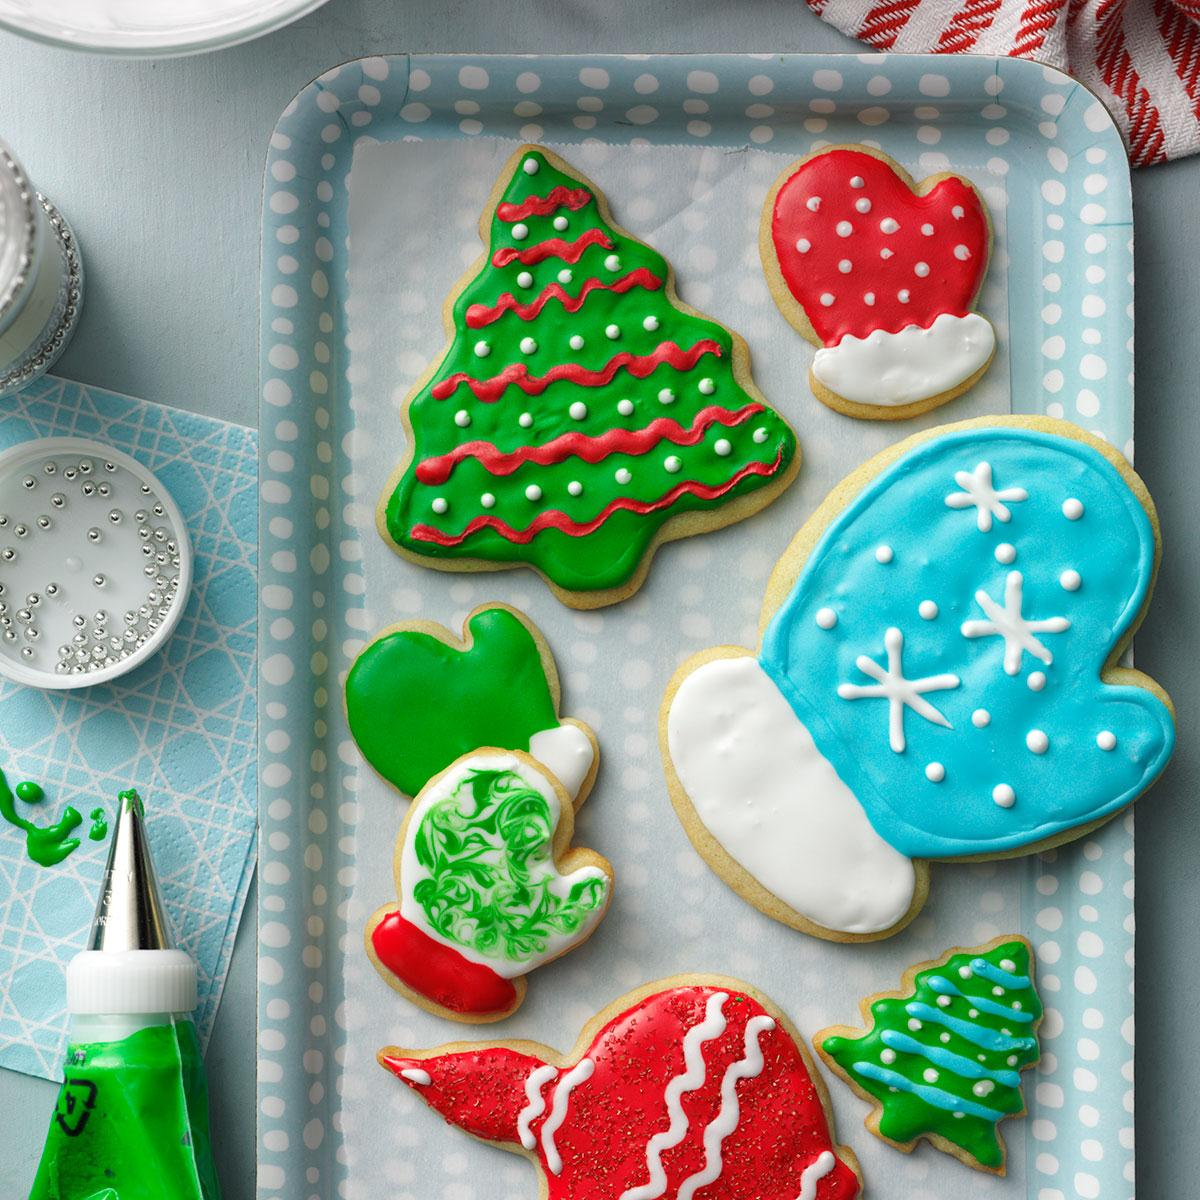 holiday cutout cookies recipe taste of home - How To Decorate Christmas Cookies With Royal Icing